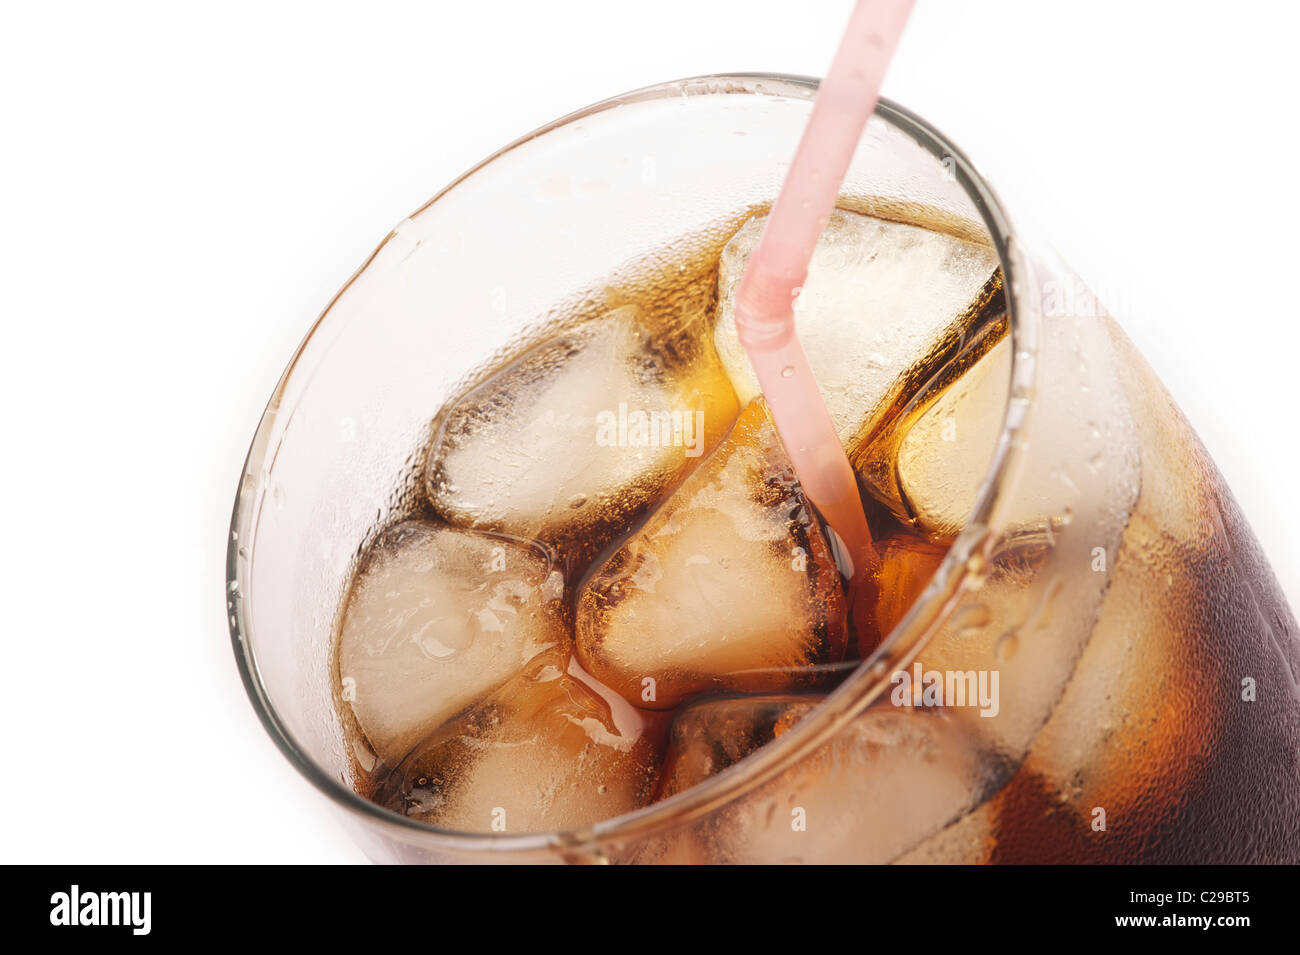 A glass of coca cola, close up view - Stock Image